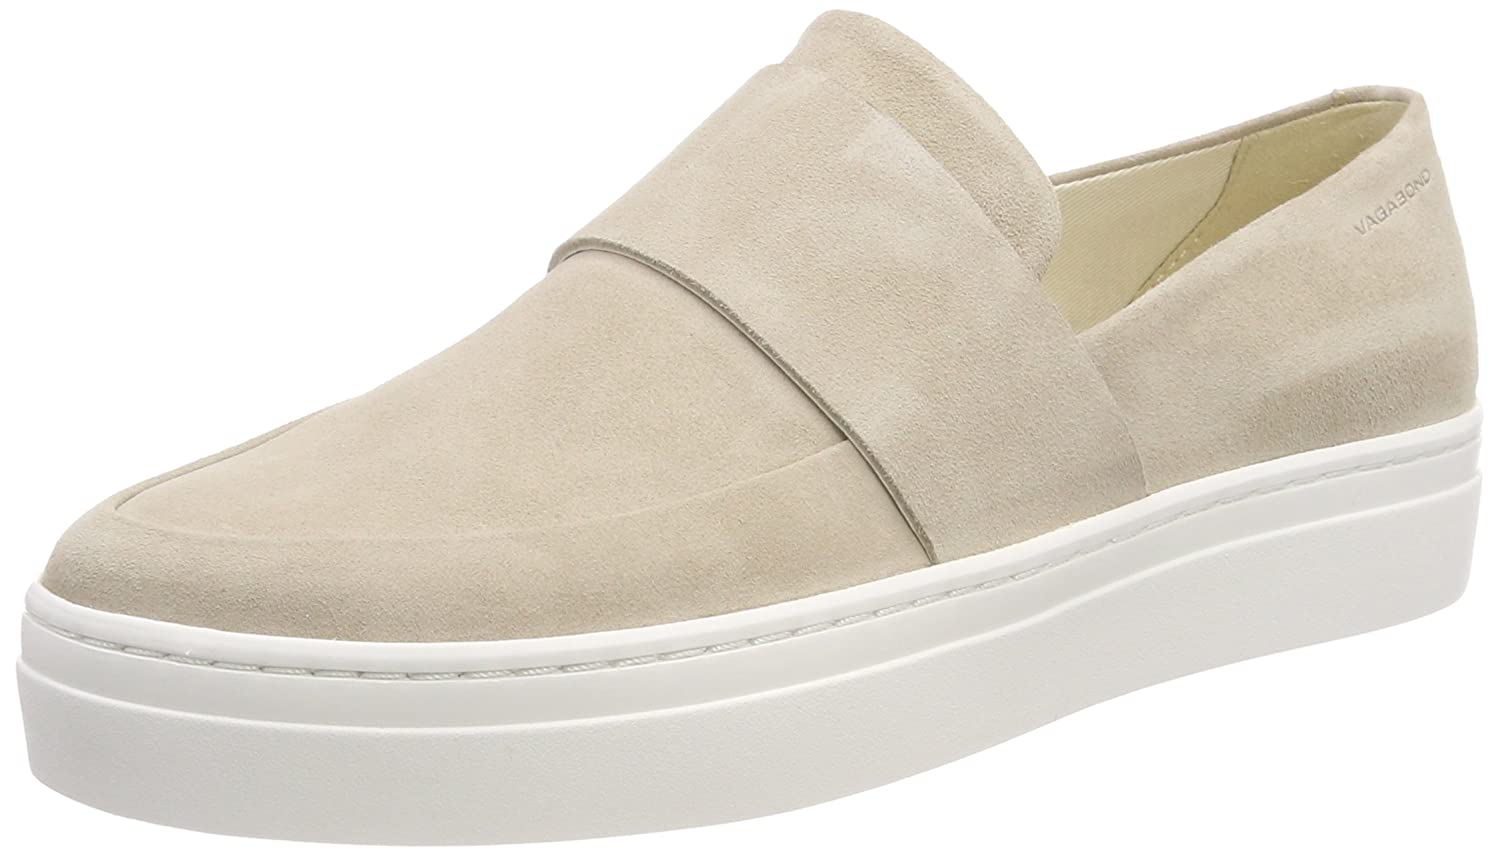 Vagabond Damen Camille Slip On Turnschuhe